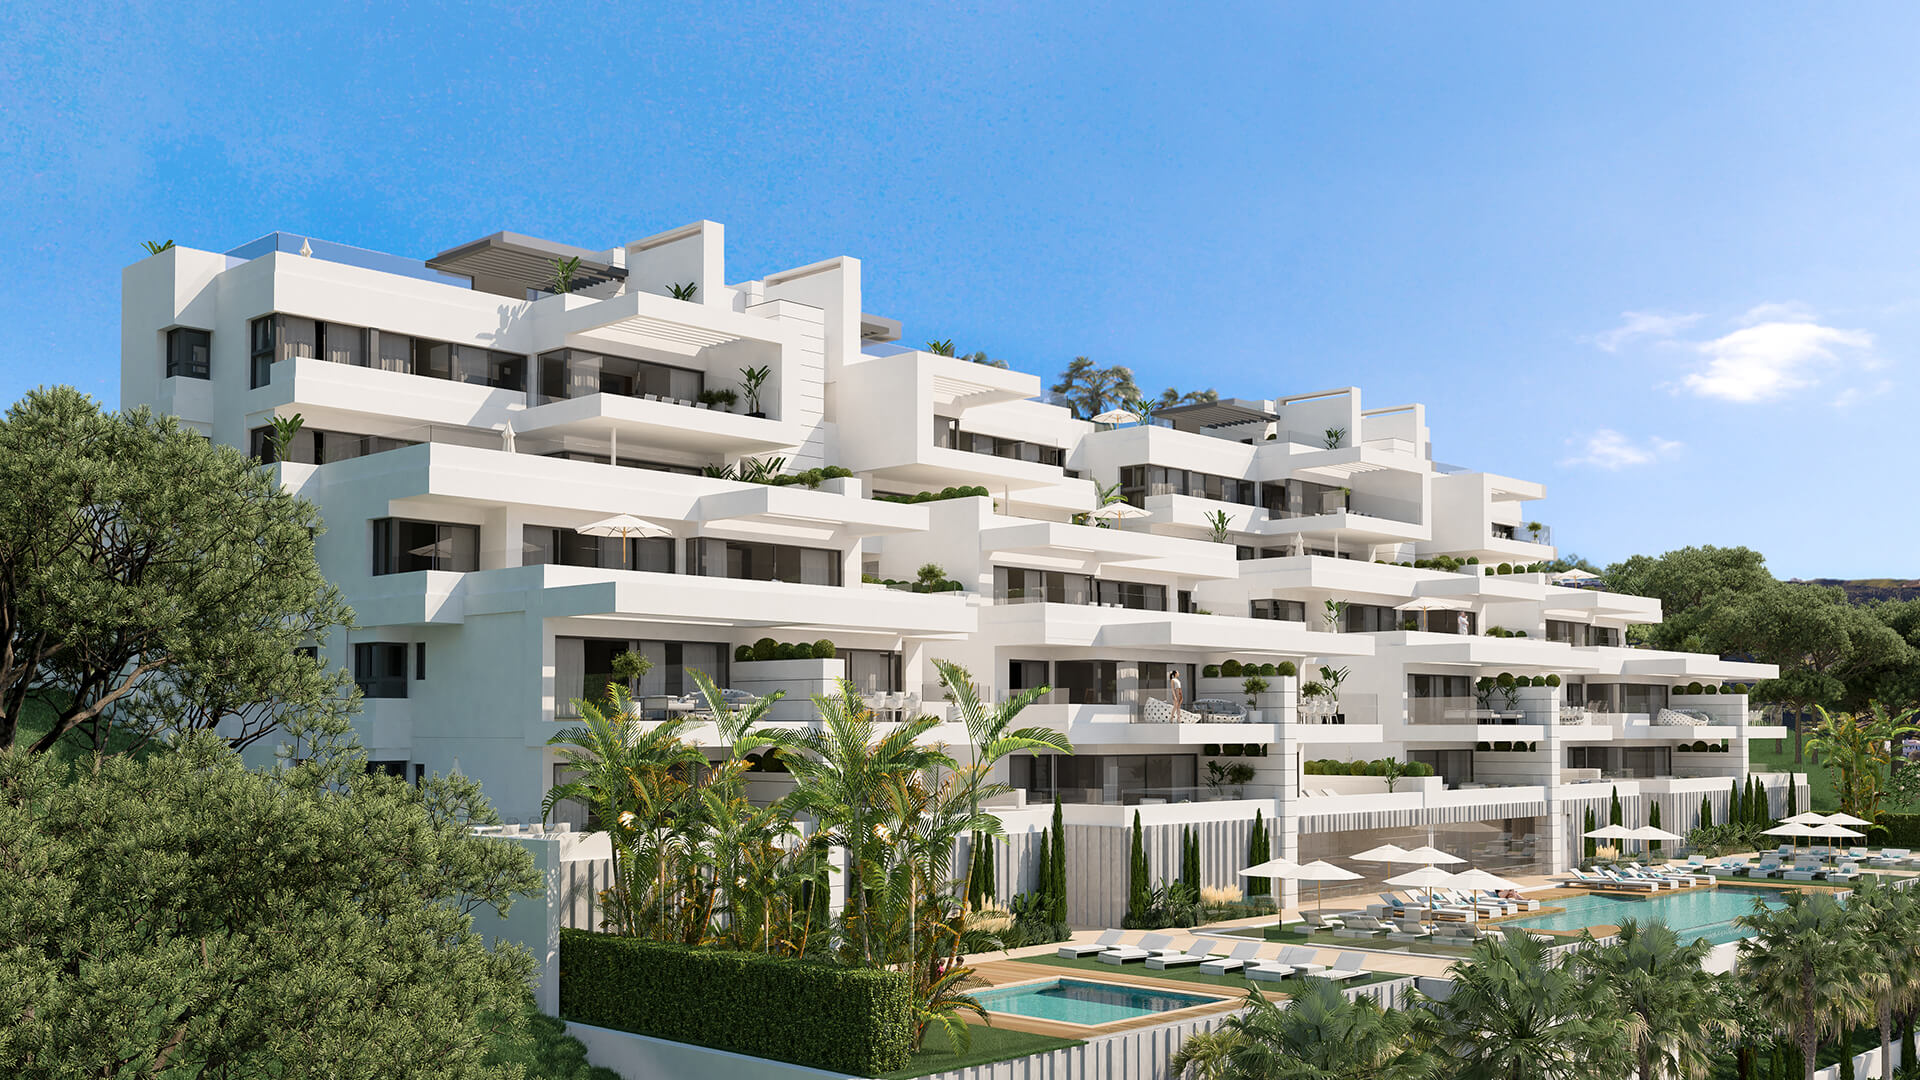 South Bay en Venta en Estepona